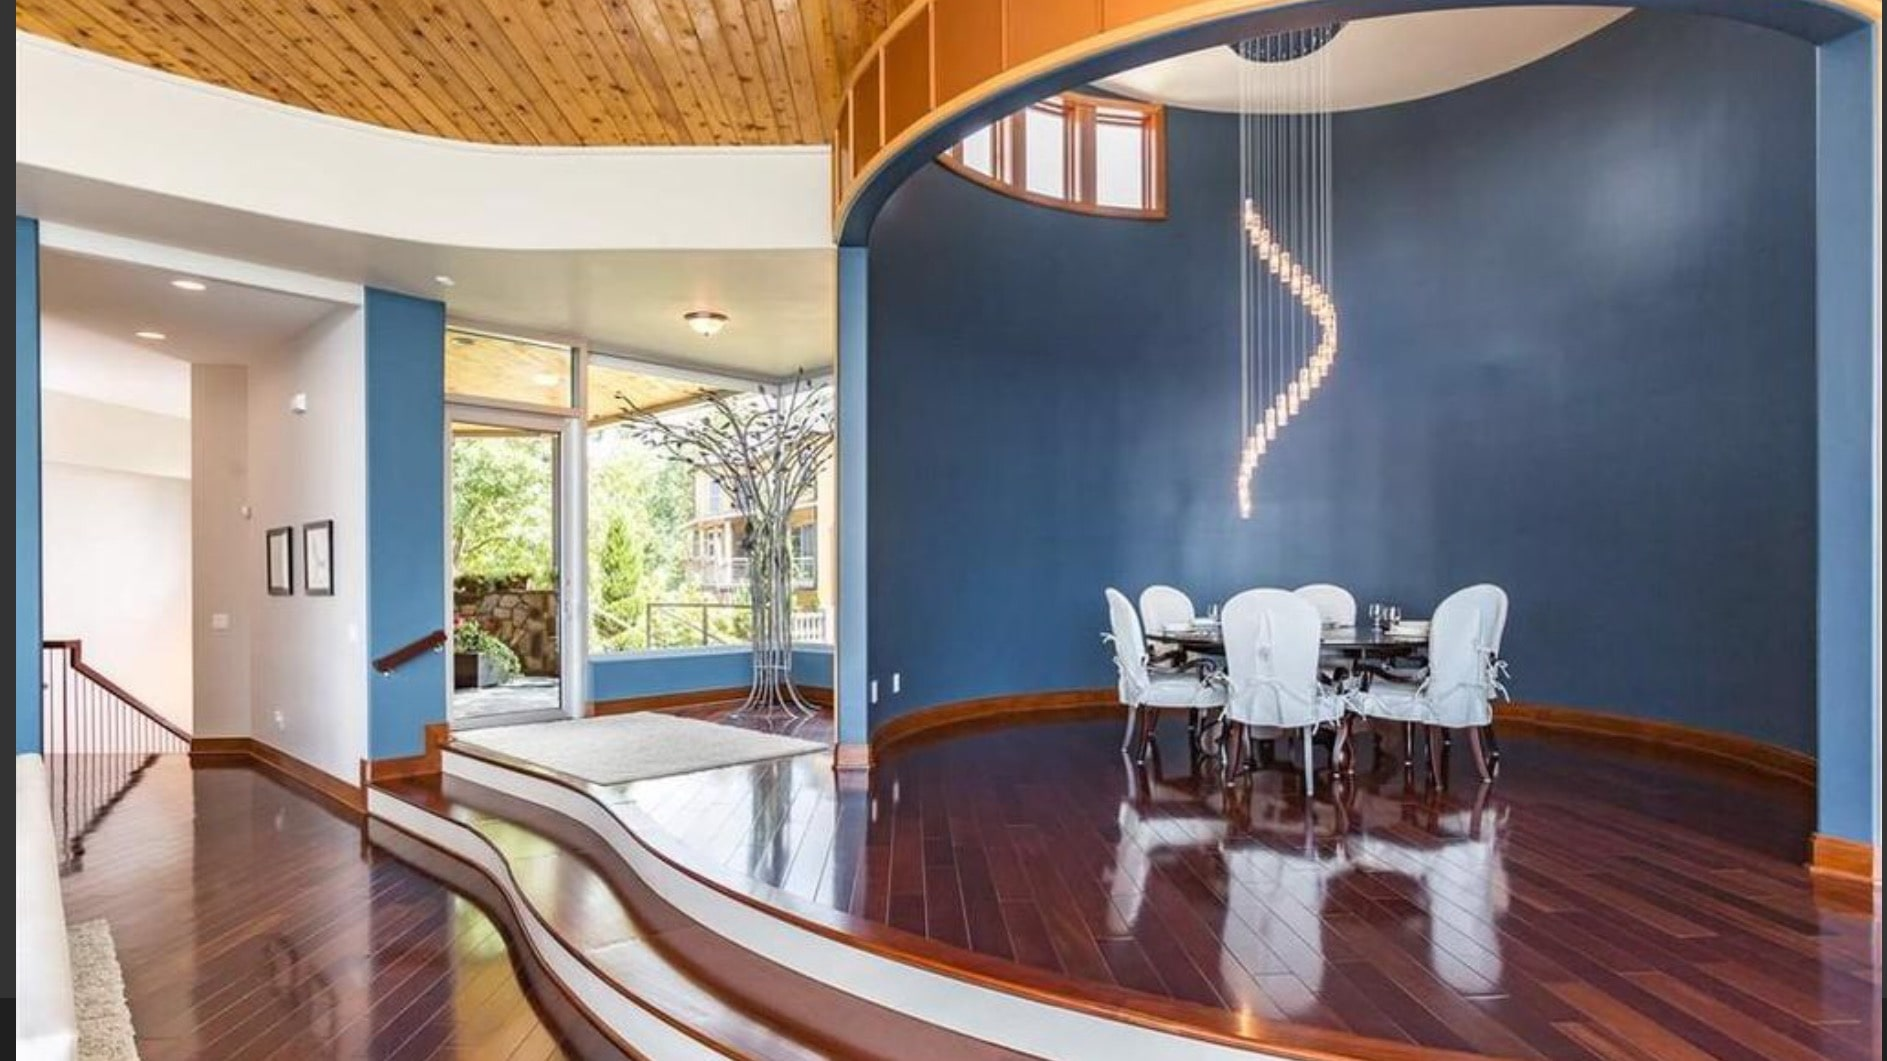 Dining area with custom chandelier designed to accentuate the space.